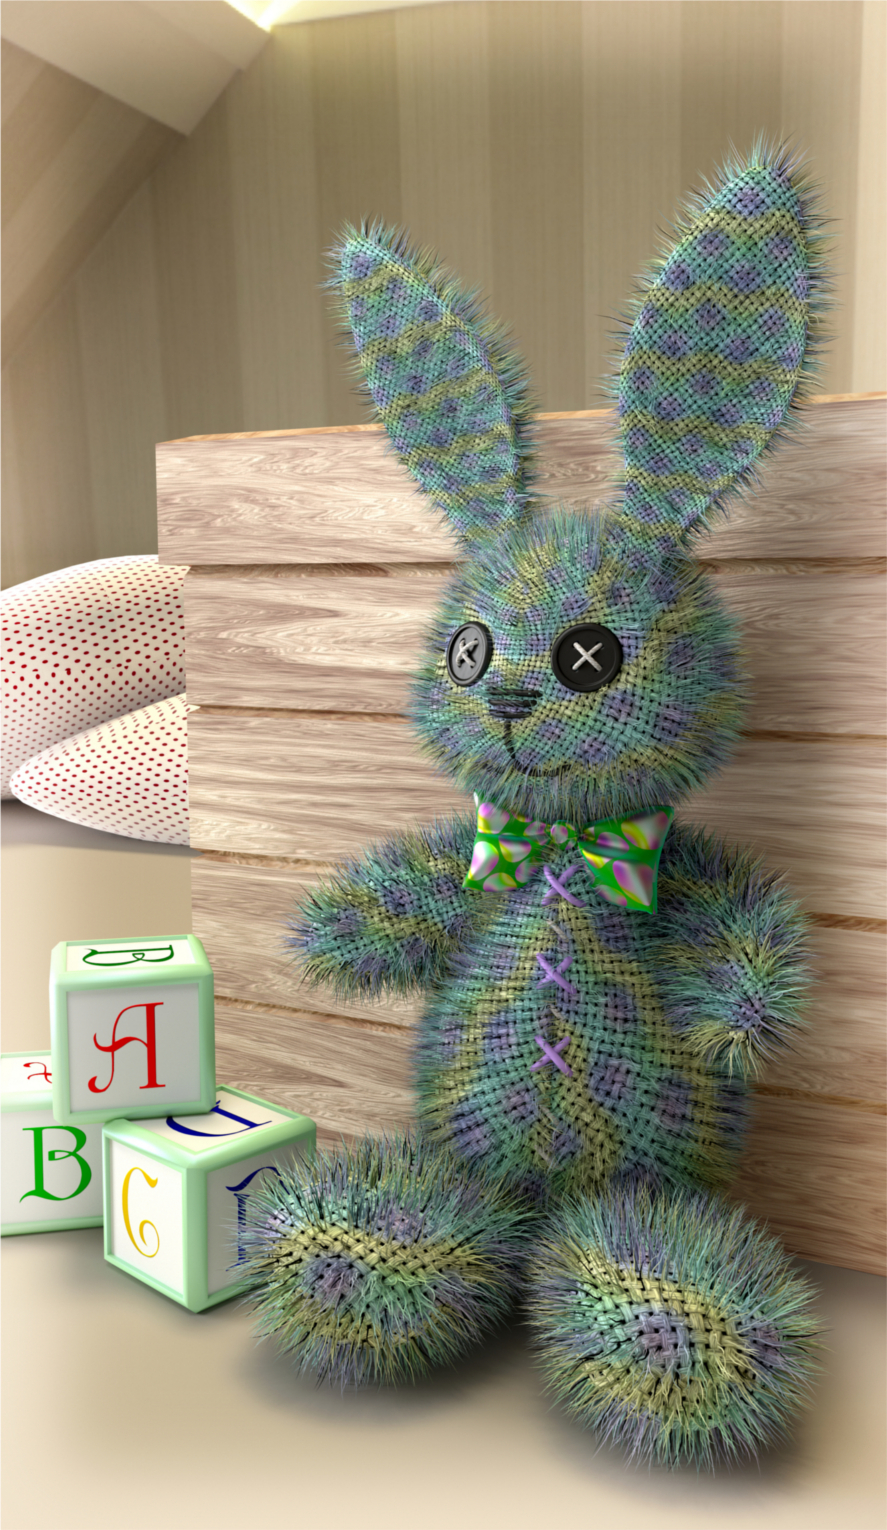 Cute Toy Bunny